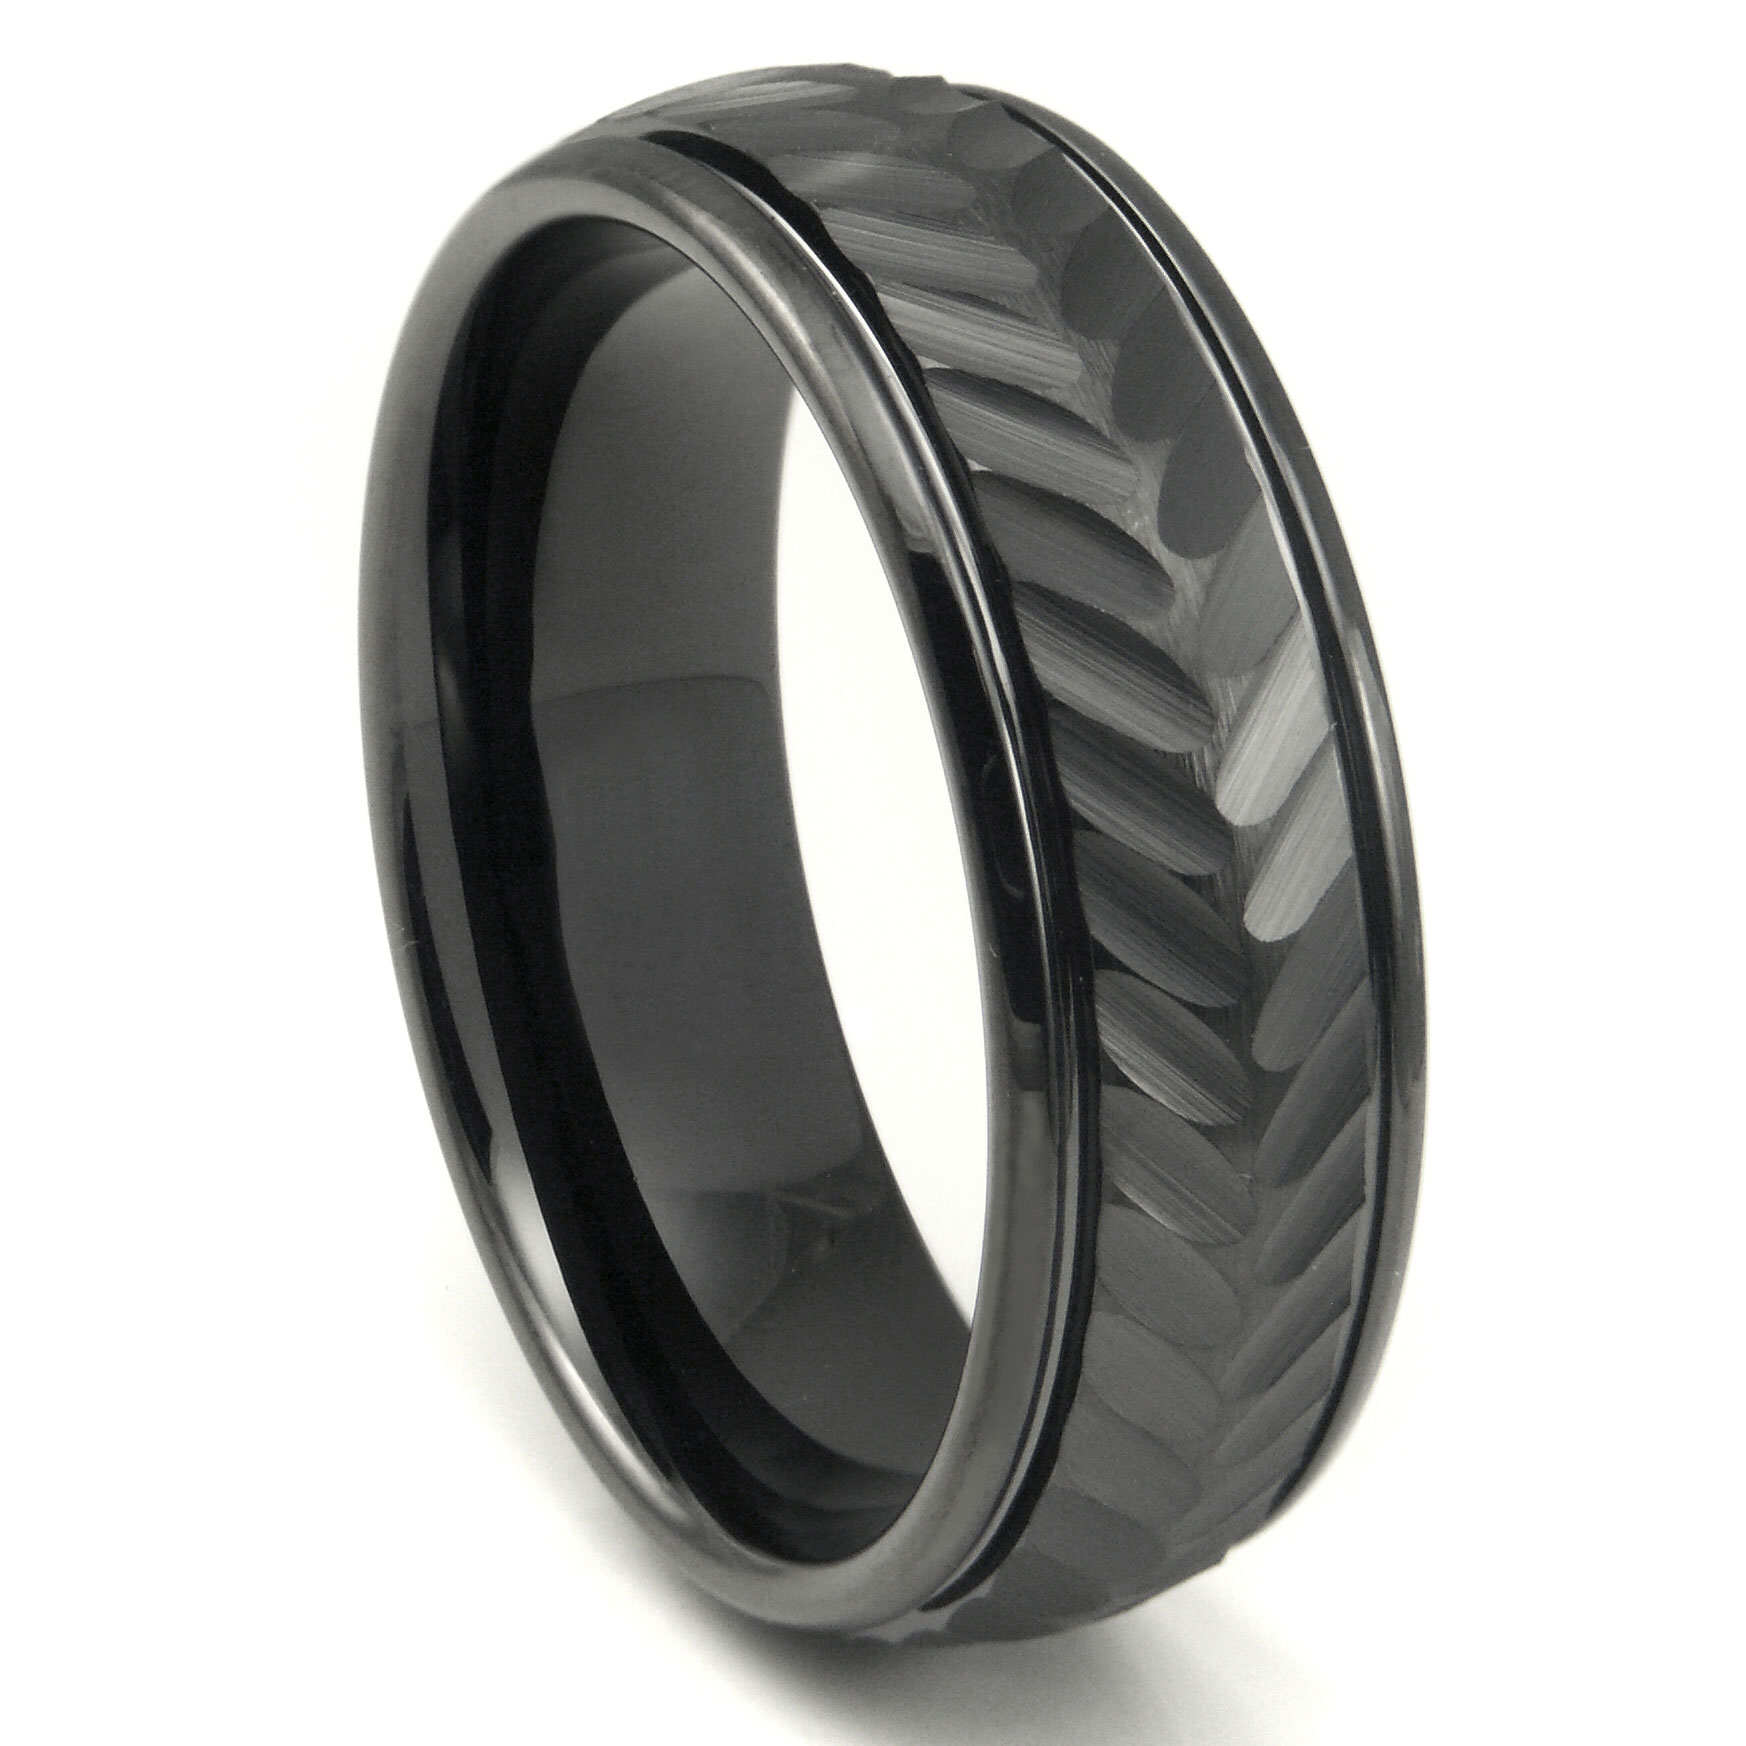 30 perfect wedding rings tungsten carbide. Black Bedroom Furniture Sets. Home Design Ideas